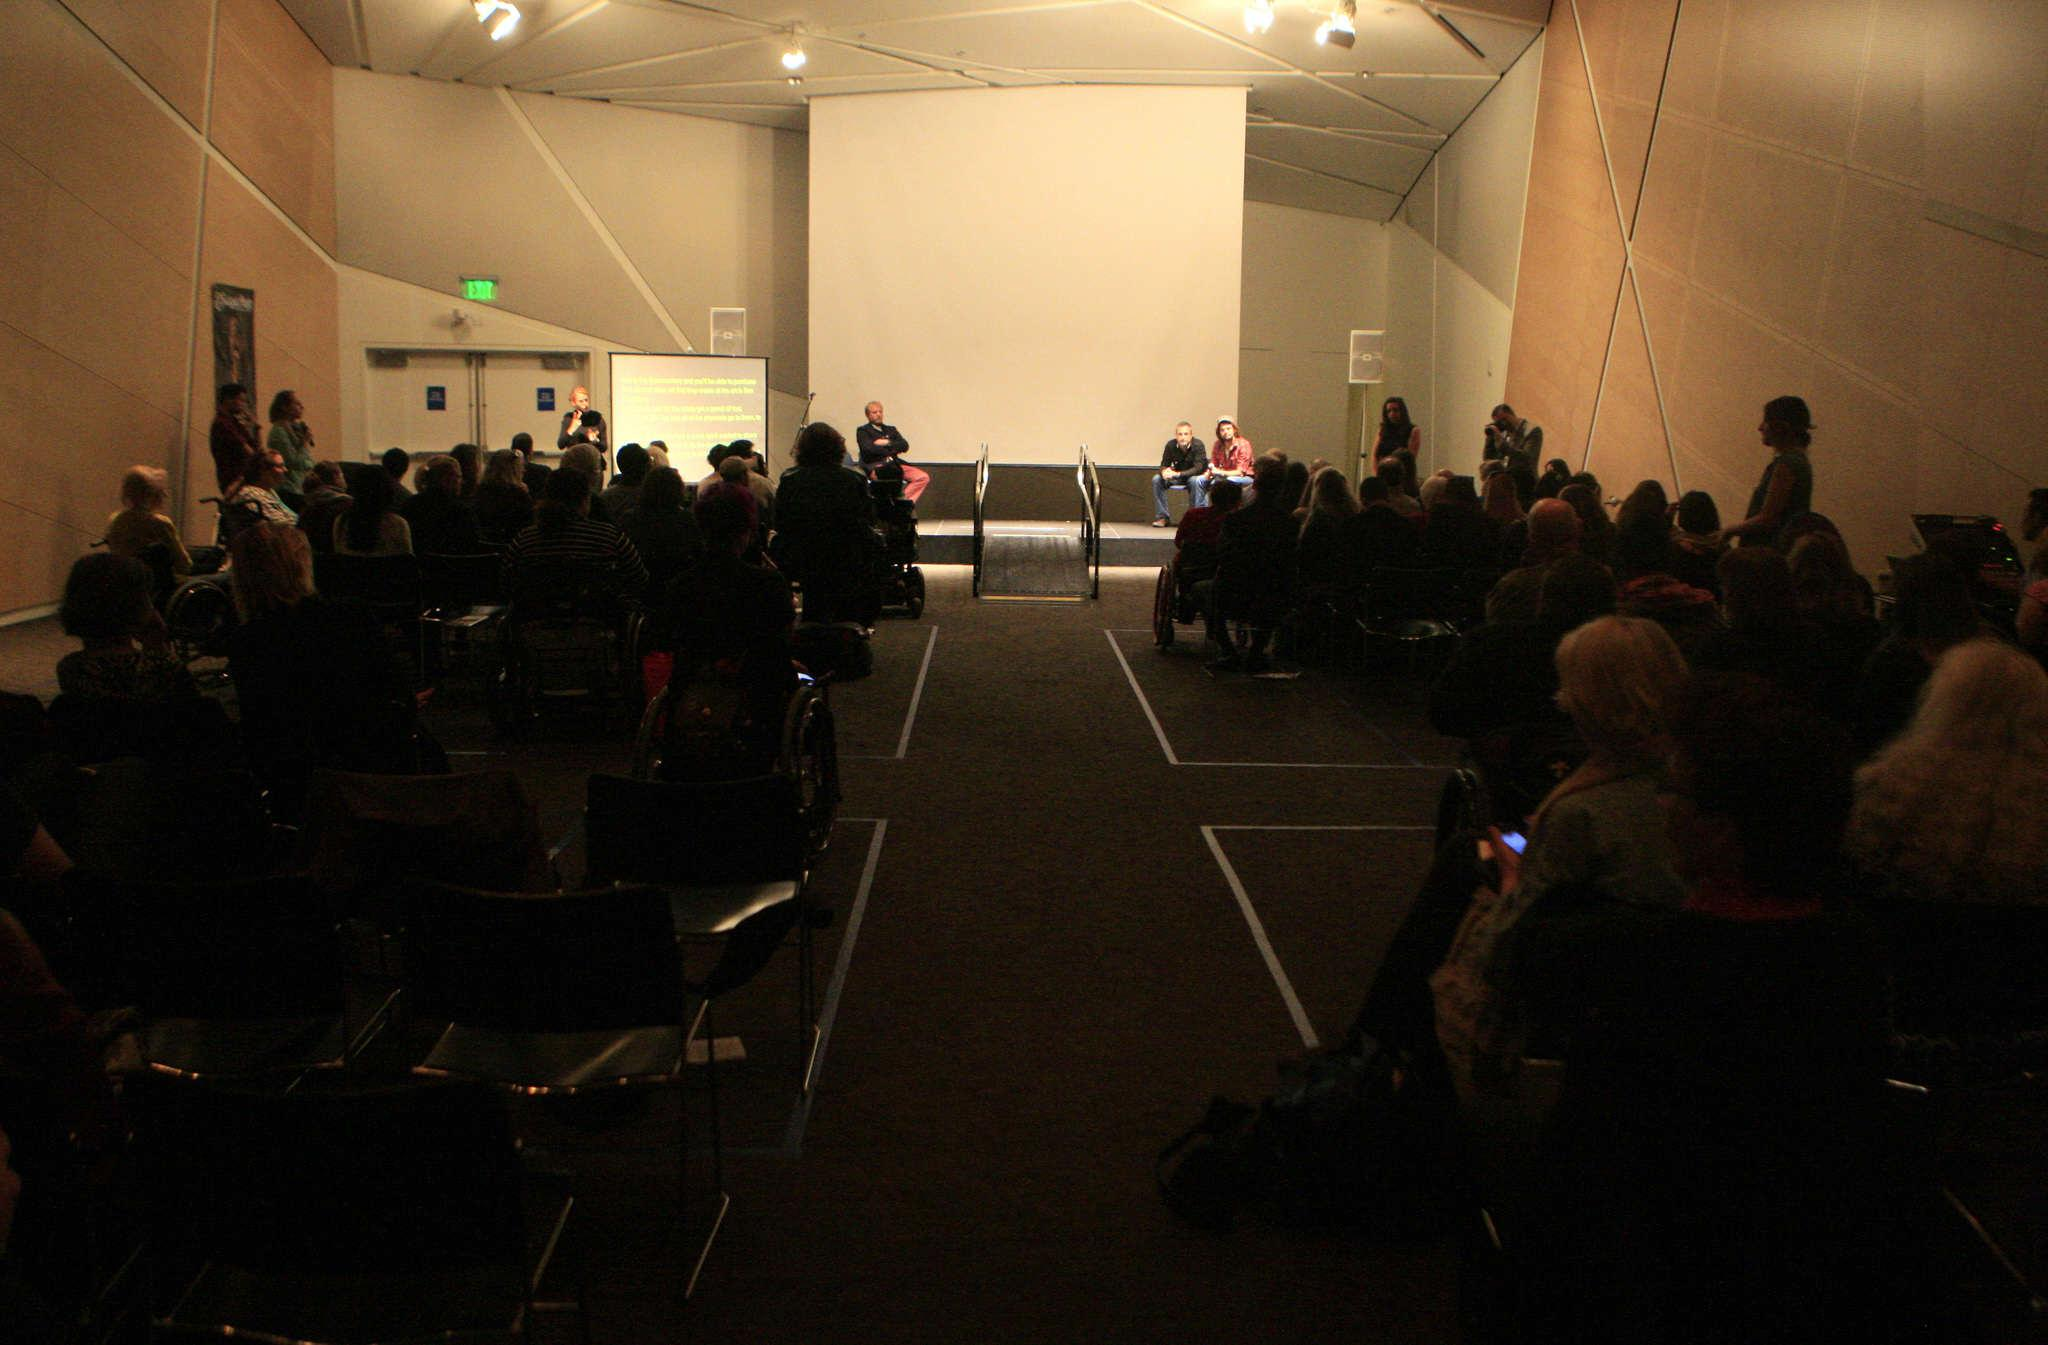 The audience gets a chance to ask questions about the films shown during Superfest, the International Disability Film Festival at the Contemporary Jewish Museum in San Francisco, Calif., Sunday, Nov. 2, 2014.